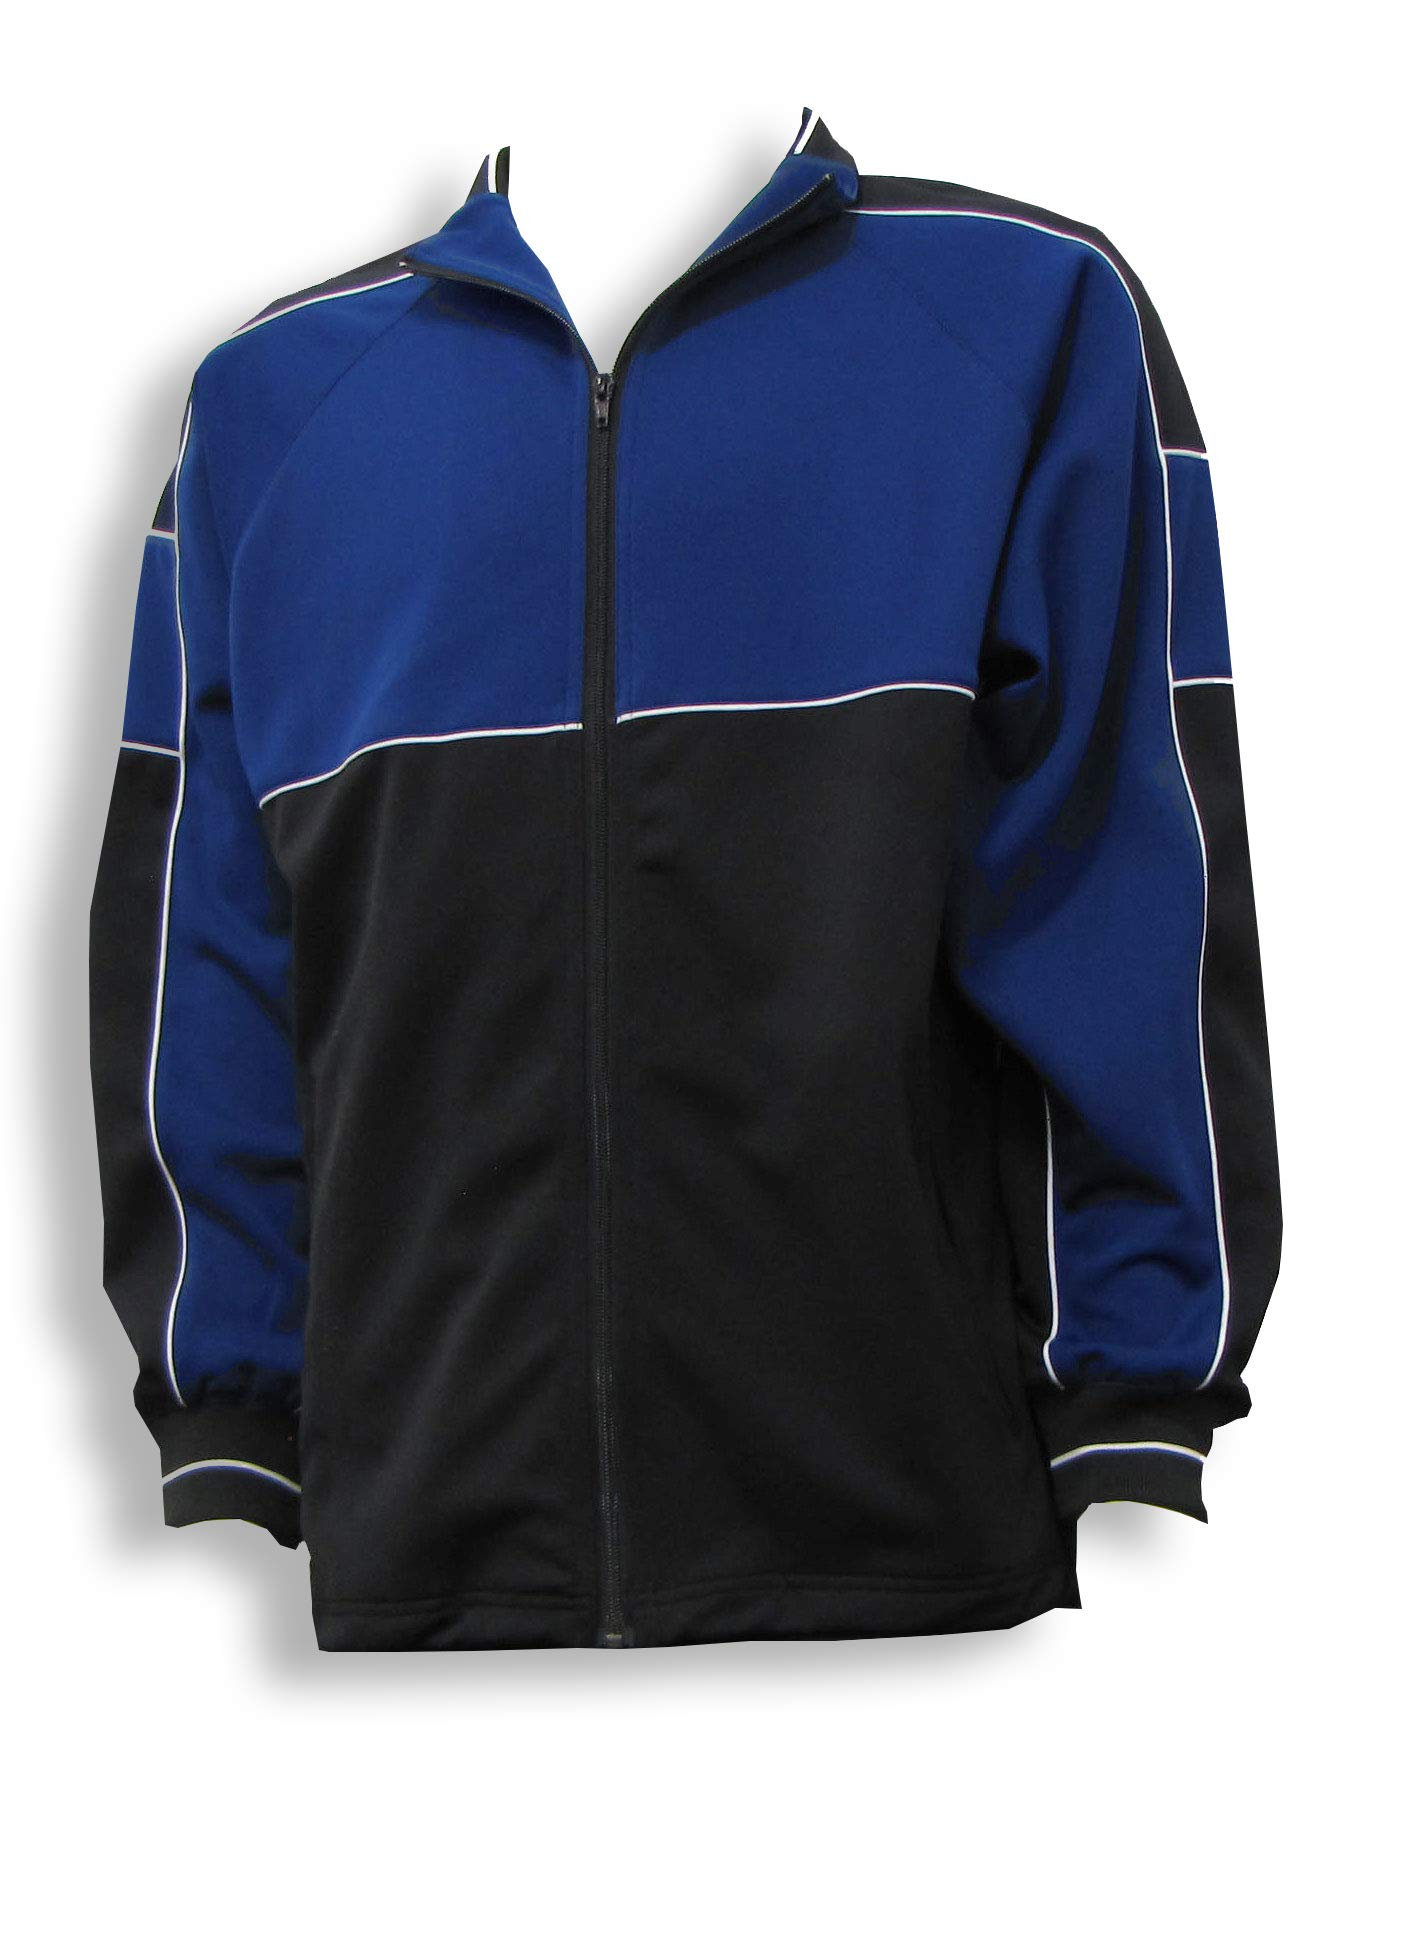 Code Four Athletics Sparta Soccer Poly-Knit Warmup Jacket - Size Adult M - Navy/Black by Code Four Athletics